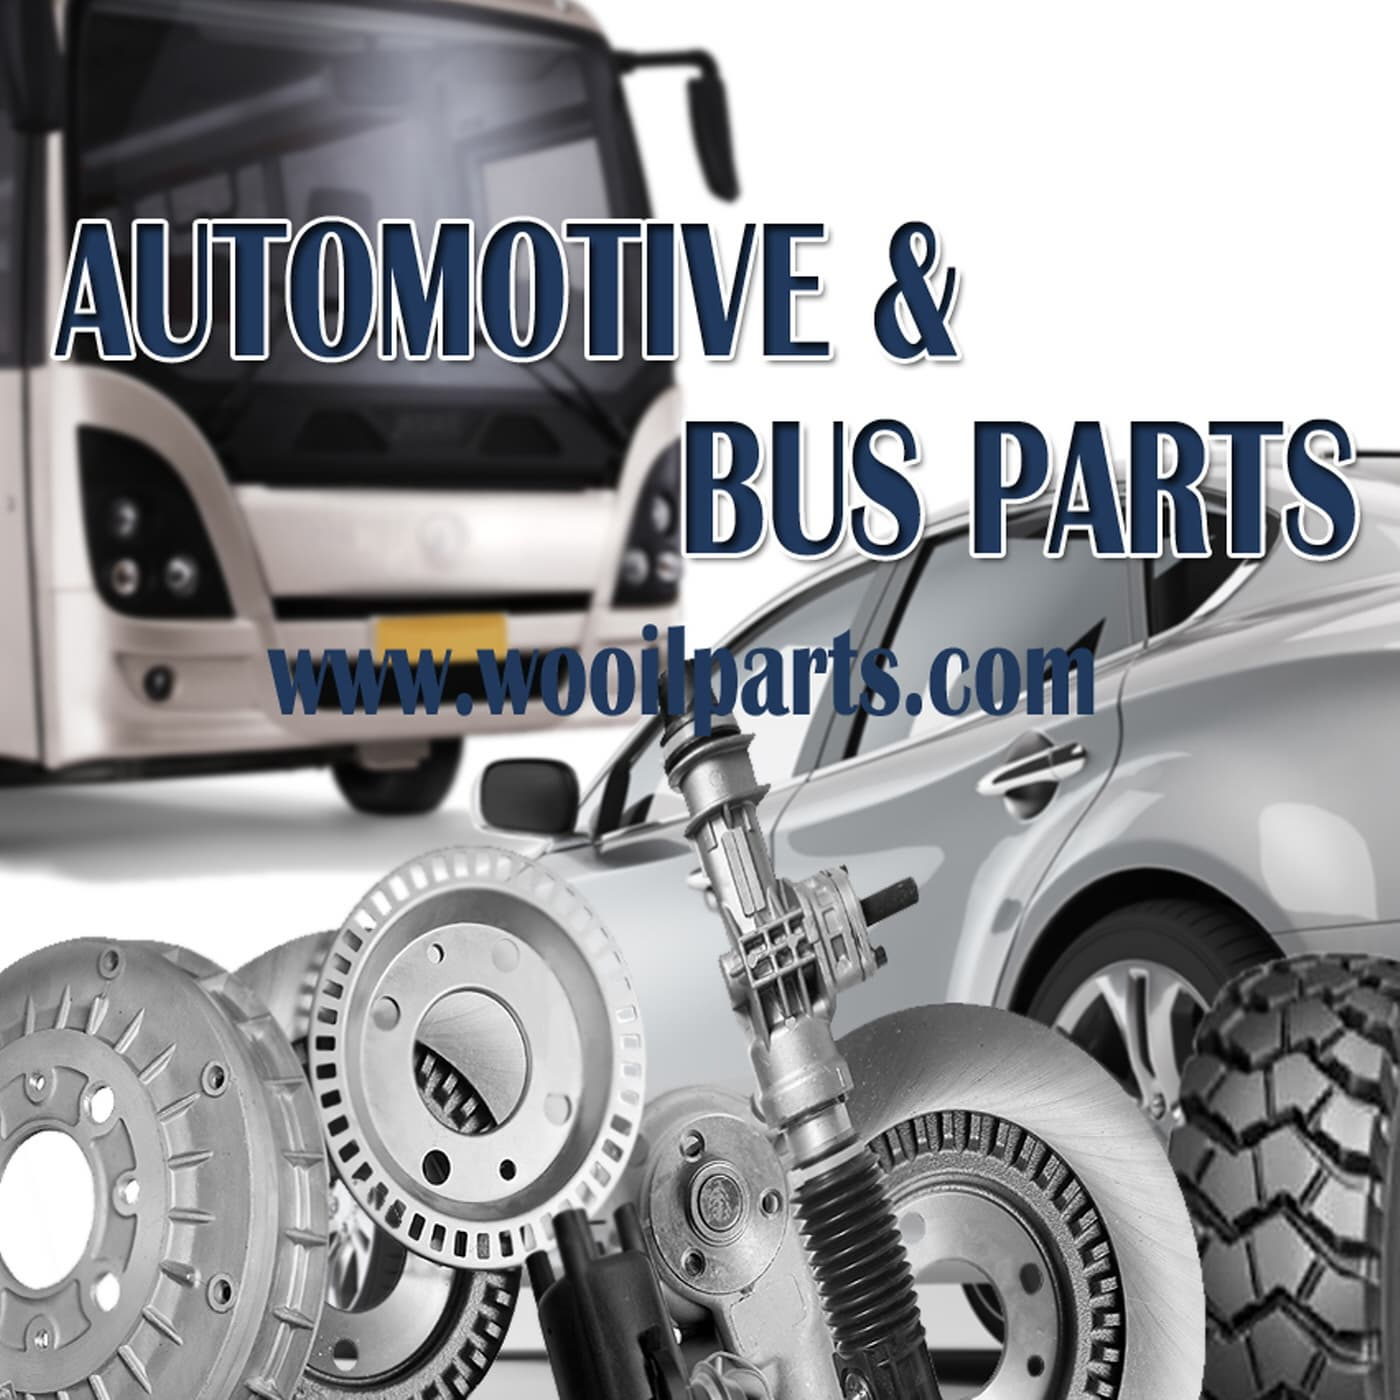 HYUNDAI_GM DAEWOO BUS PARTS